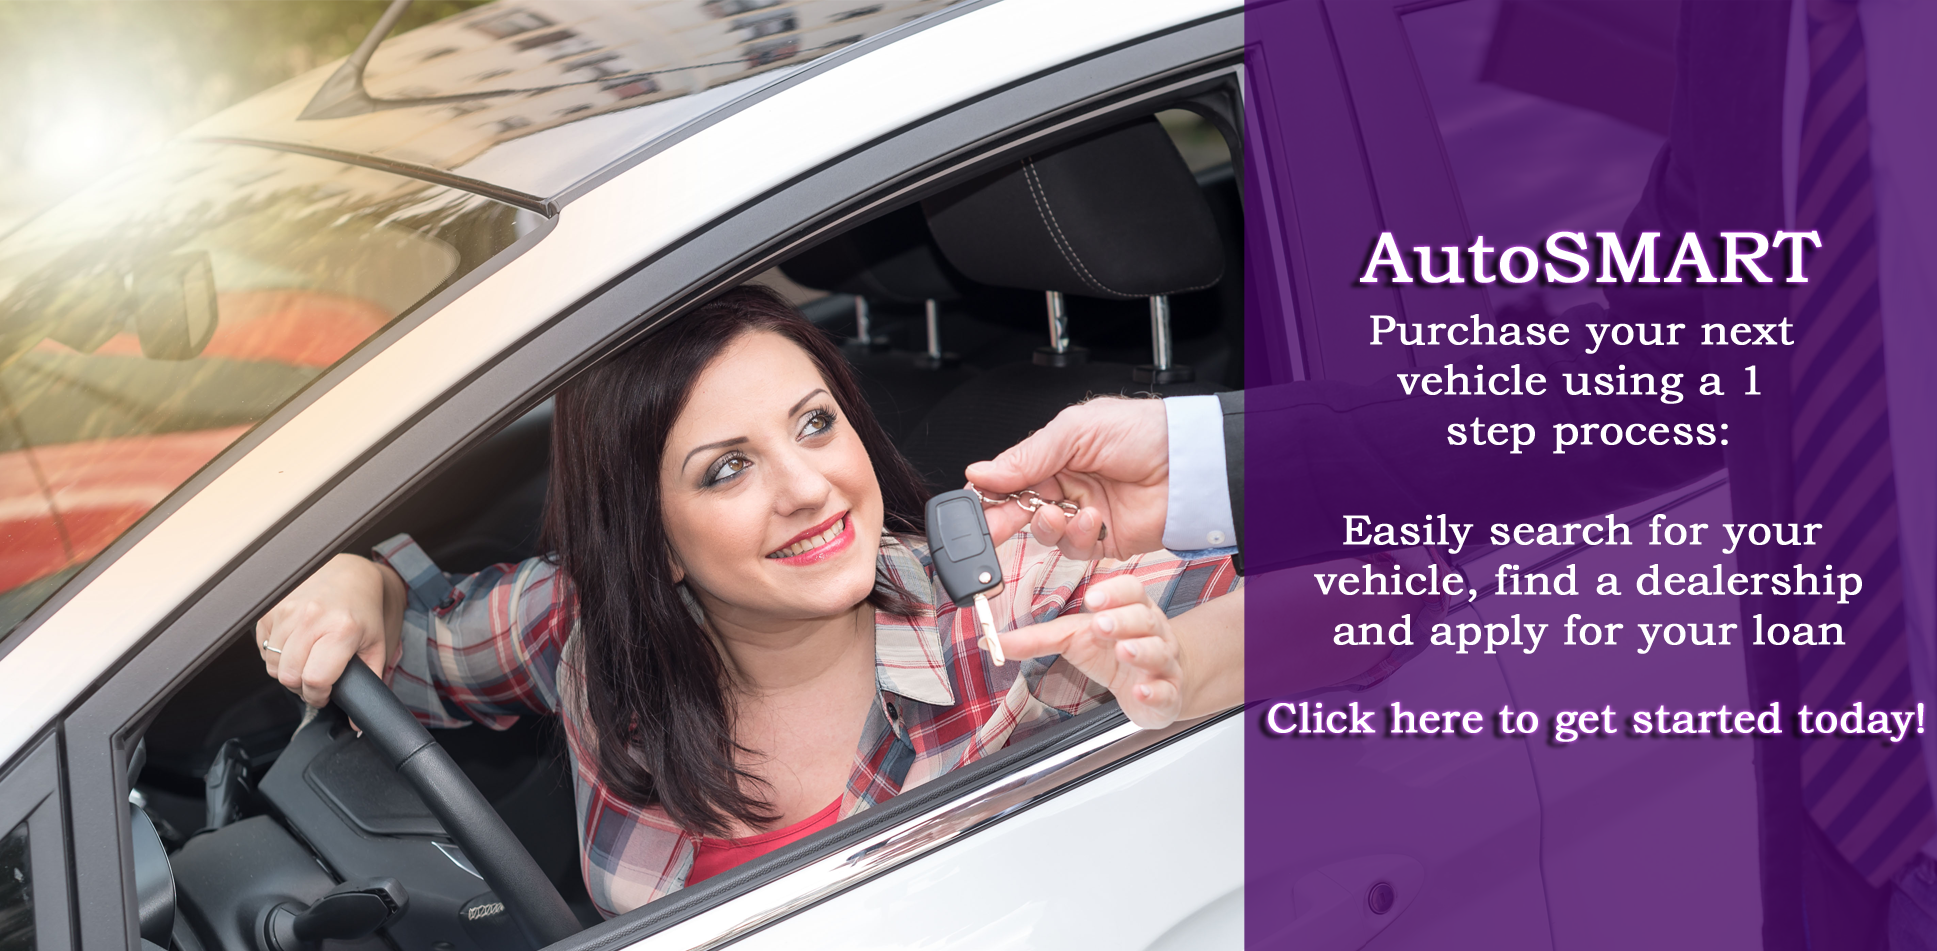 image link to the AutoSmart vehicle purchasing website